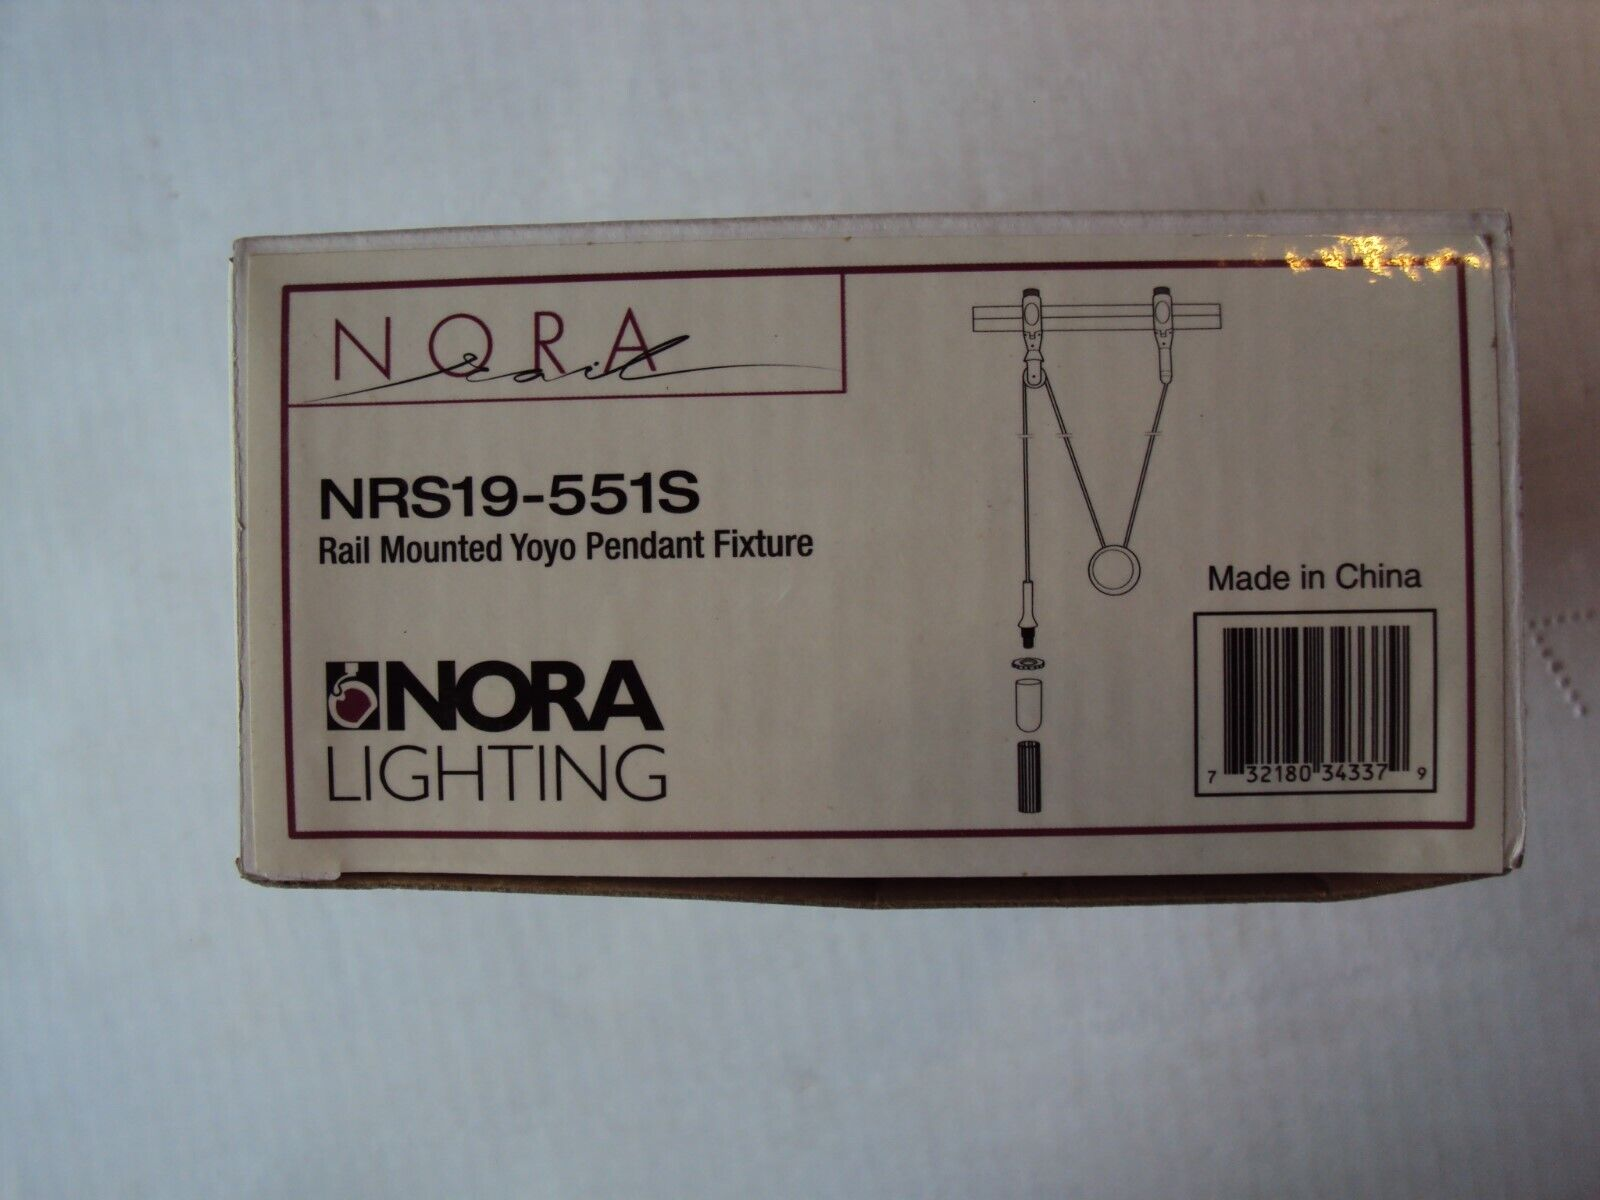 Nora Lighting  NRS19-551S Rail Mounted Yoyo Pendant Fixture